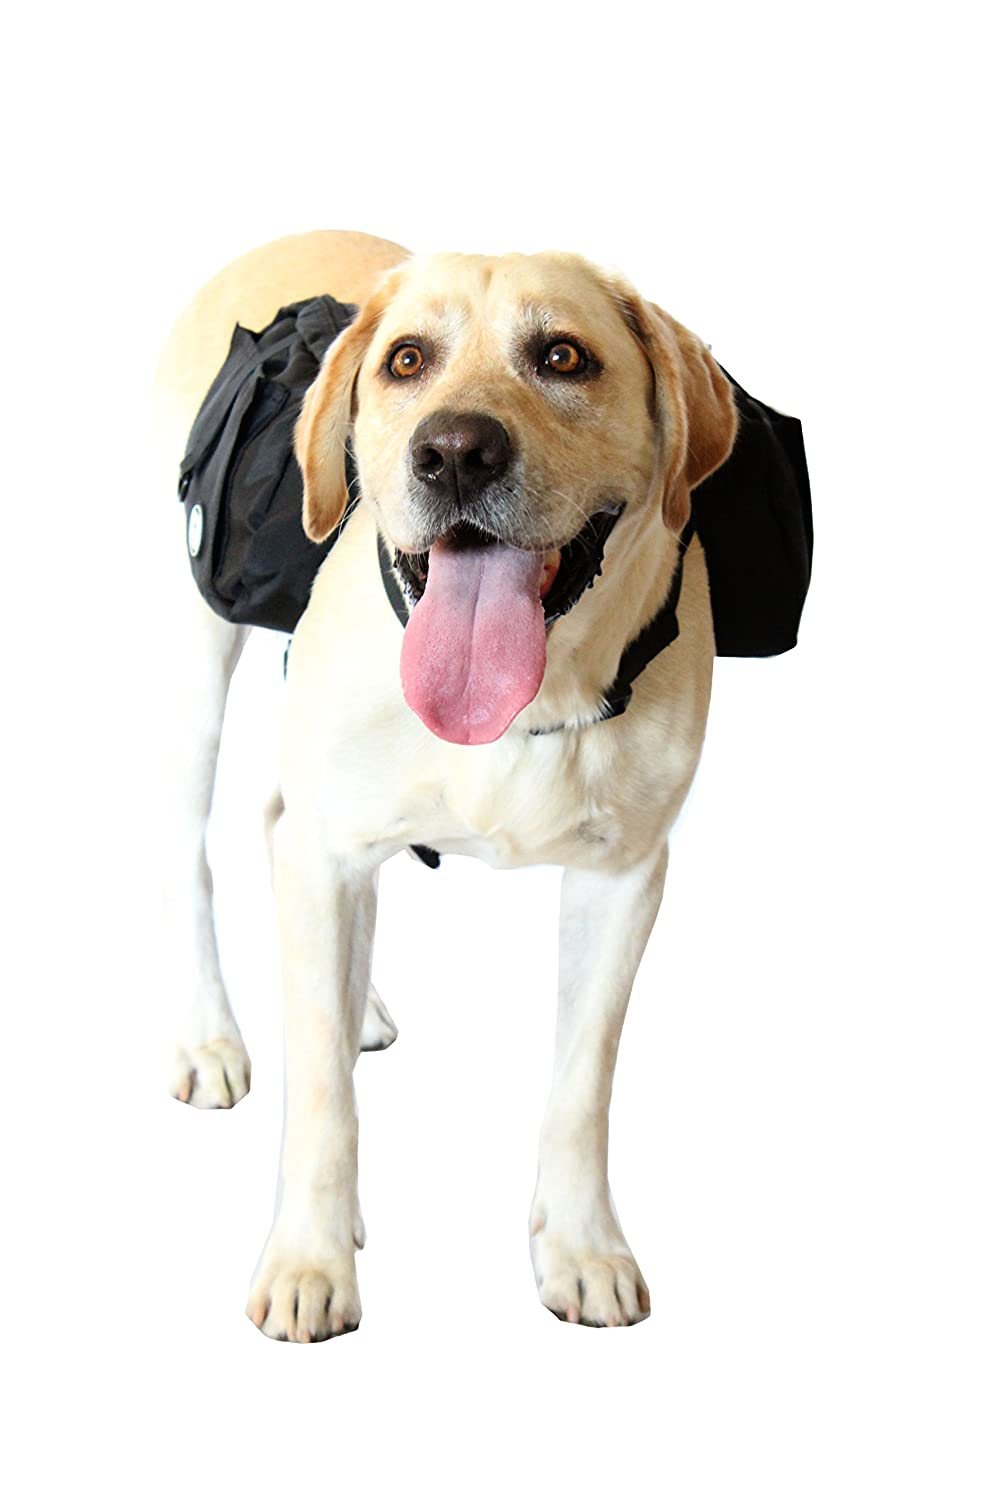 RIGG DOG Oxford Canvas Dog Saddle Bag Harness Backpack Saddlebags for Medium and Large Dogs Lightweight Perfect Dog Hiking Pack for Treks Durable Camping and Hound Travel